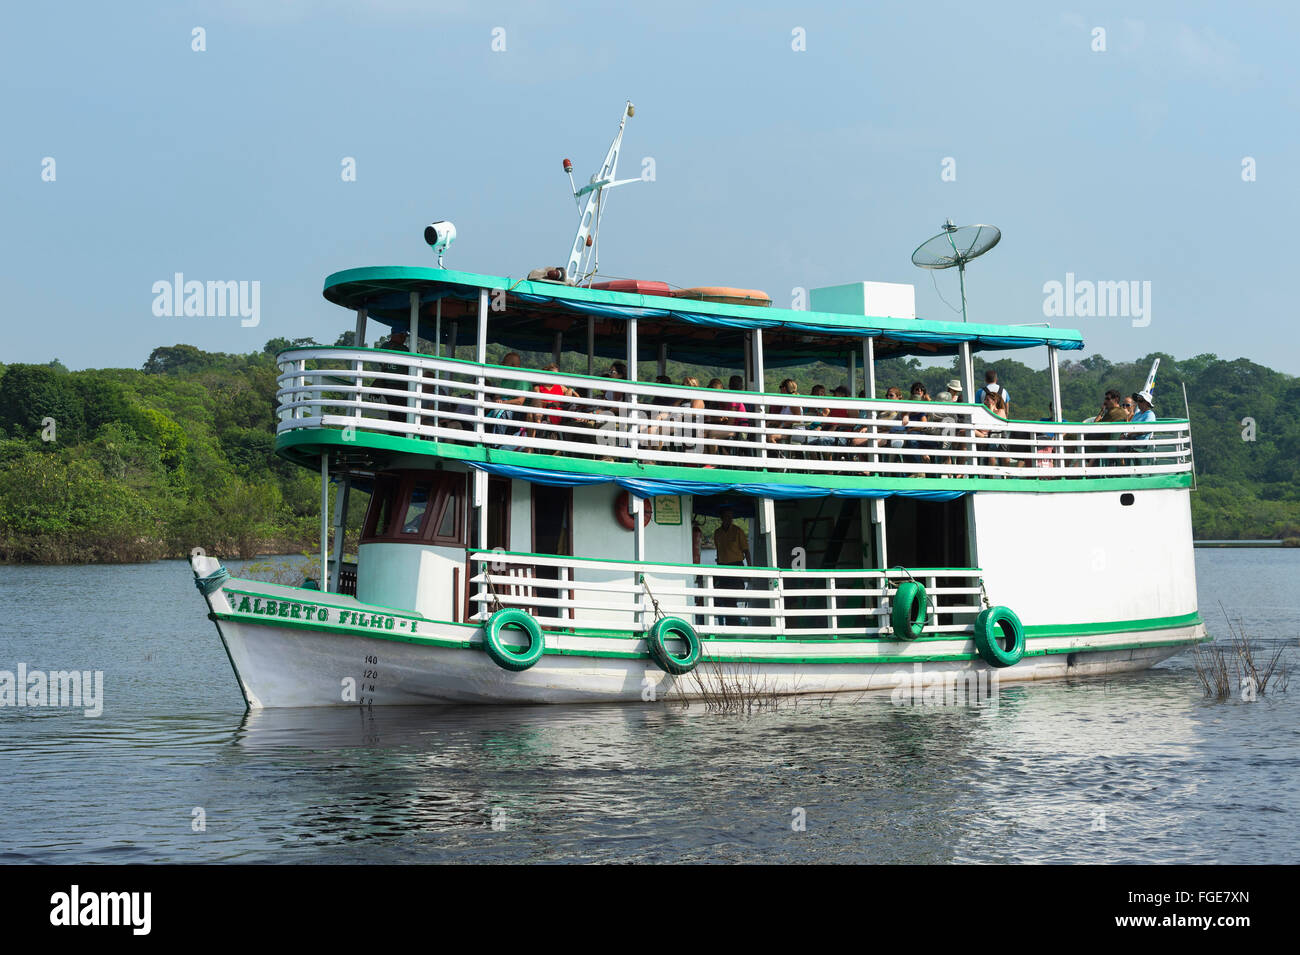 Traditional wood boat navigating with tourists on the Rio Negro, Manaus, Amazona state, Brazil - Stock Image